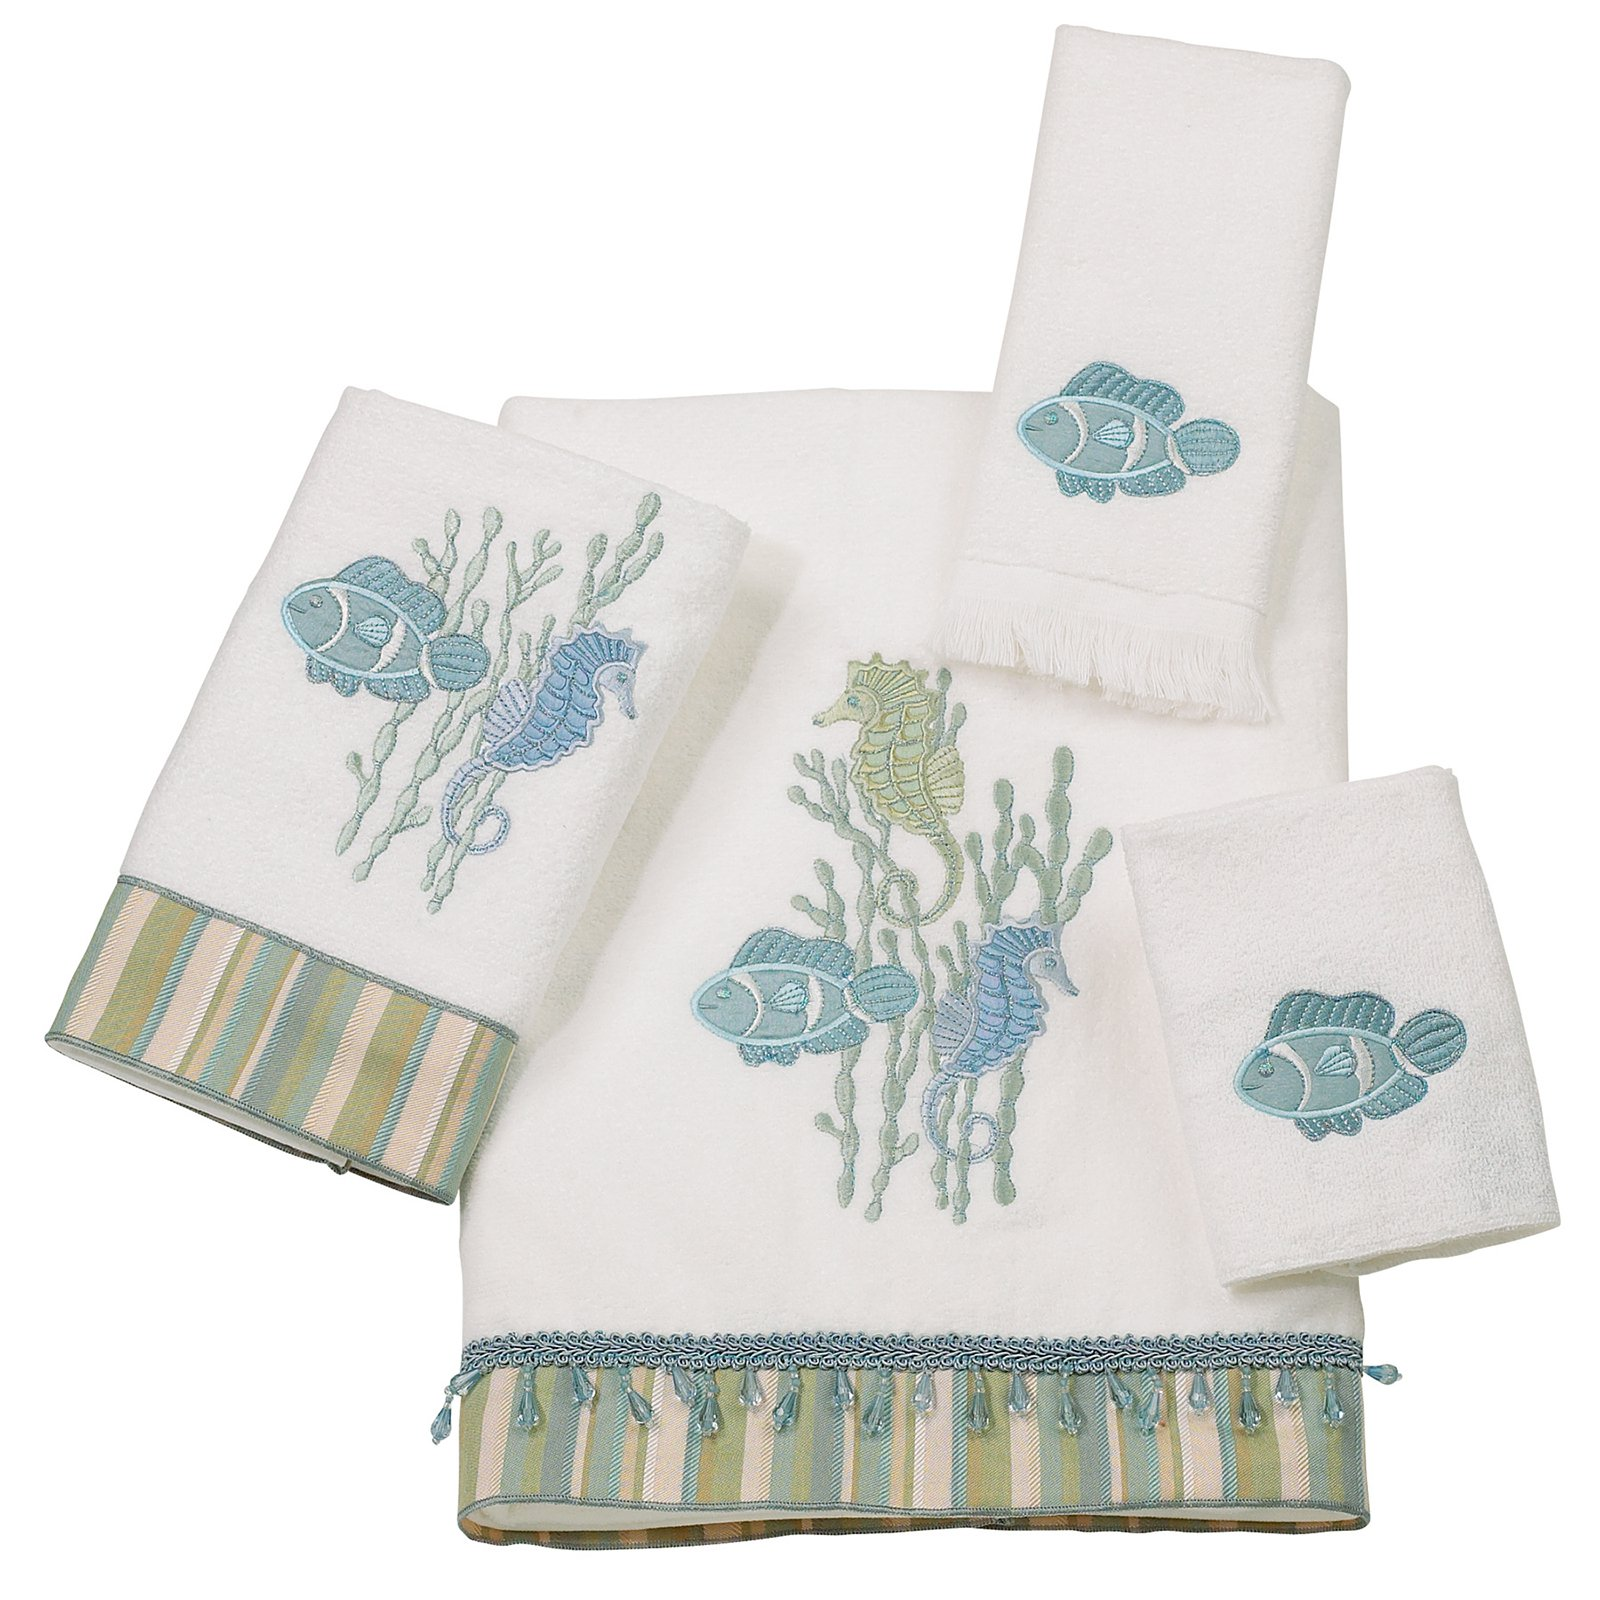 Avanti Linens Reef Life 4-Piece Towel Set